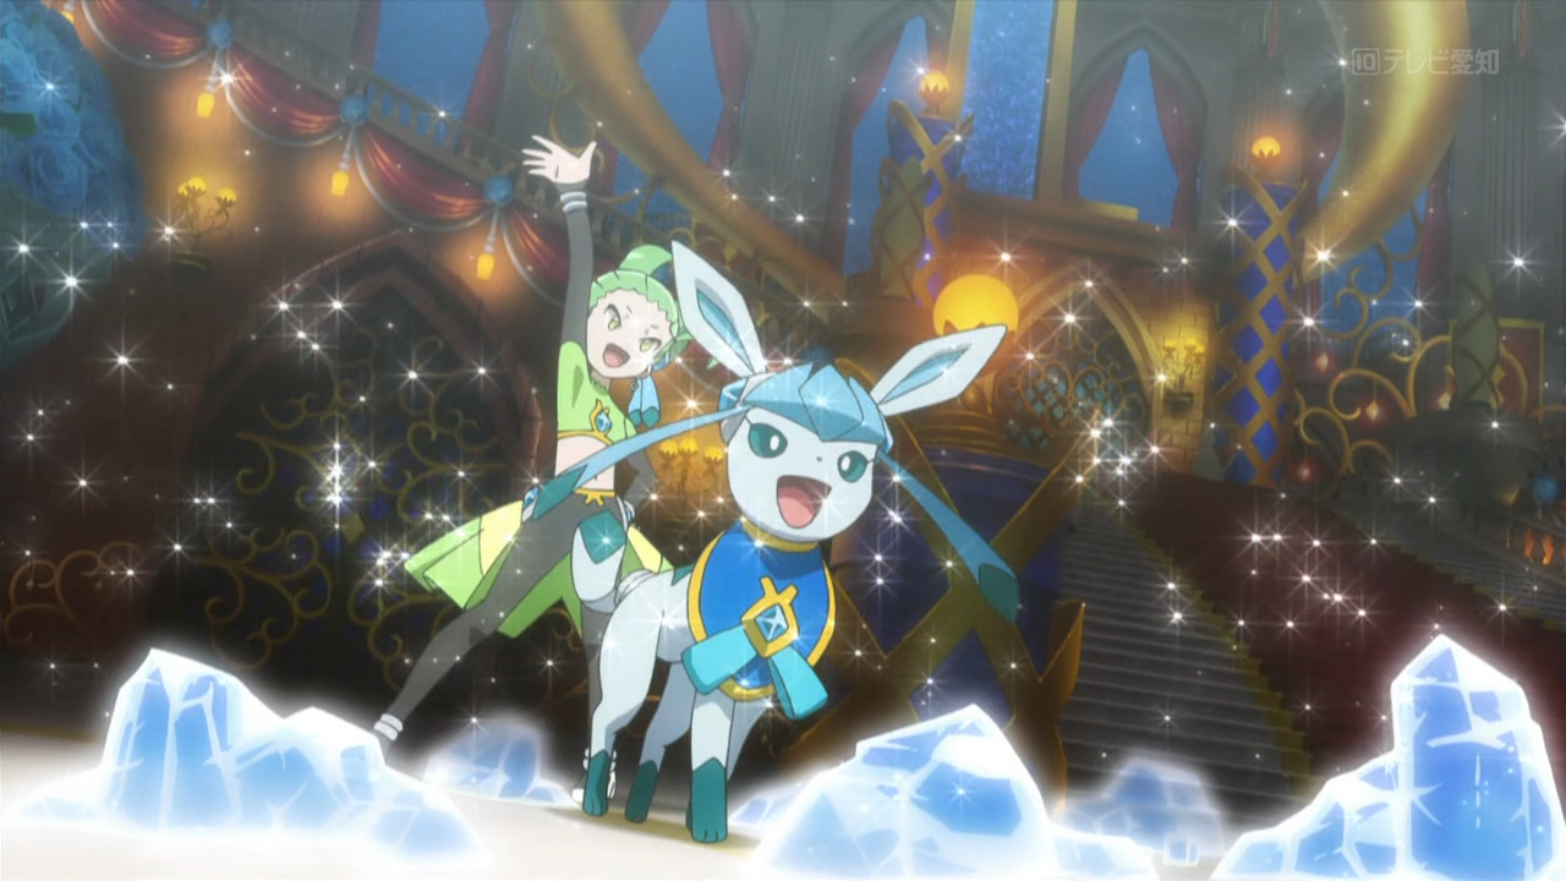 Sara Lee's Glaceon